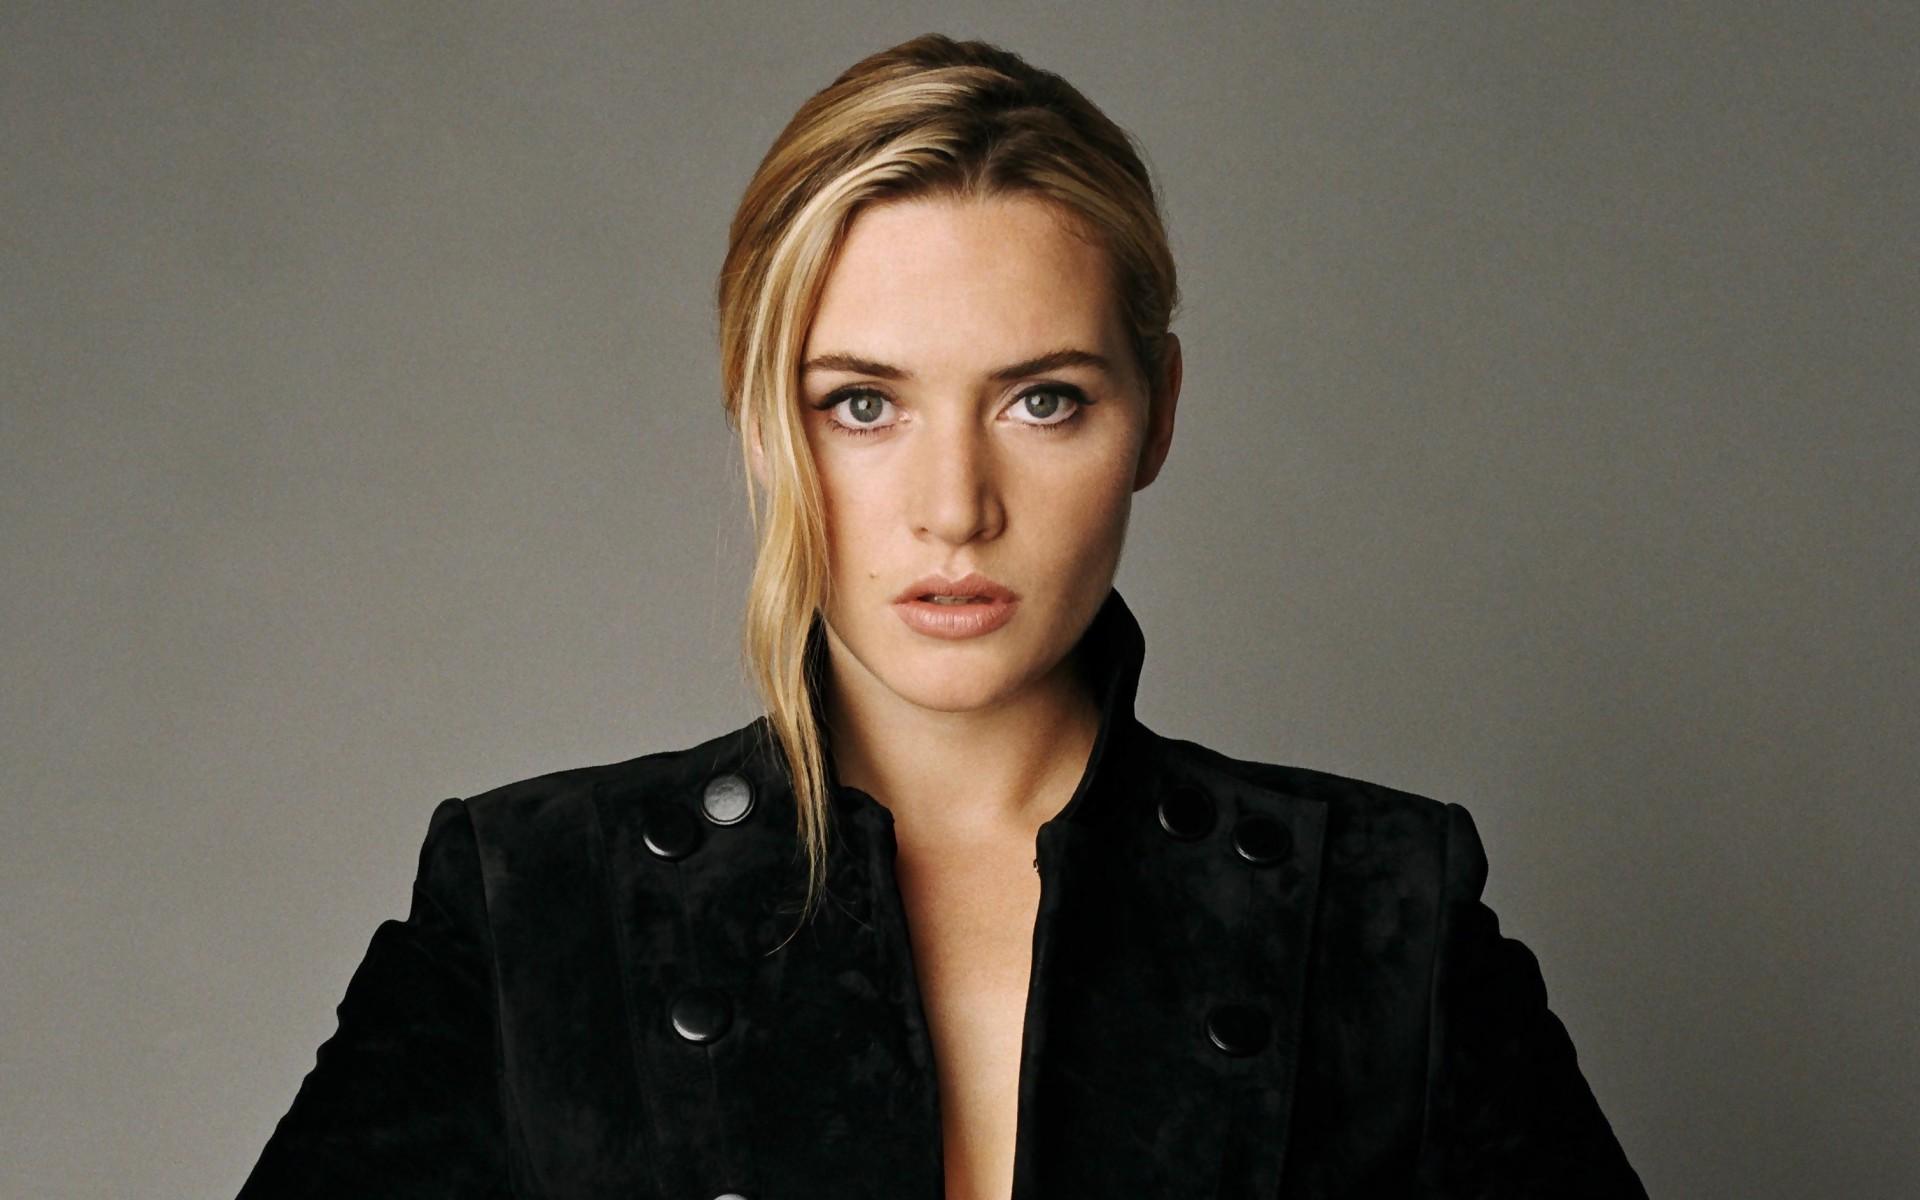 kate winslet photo 52f36d11e46ca Kate Winslet dans le biopic de Jobs ?